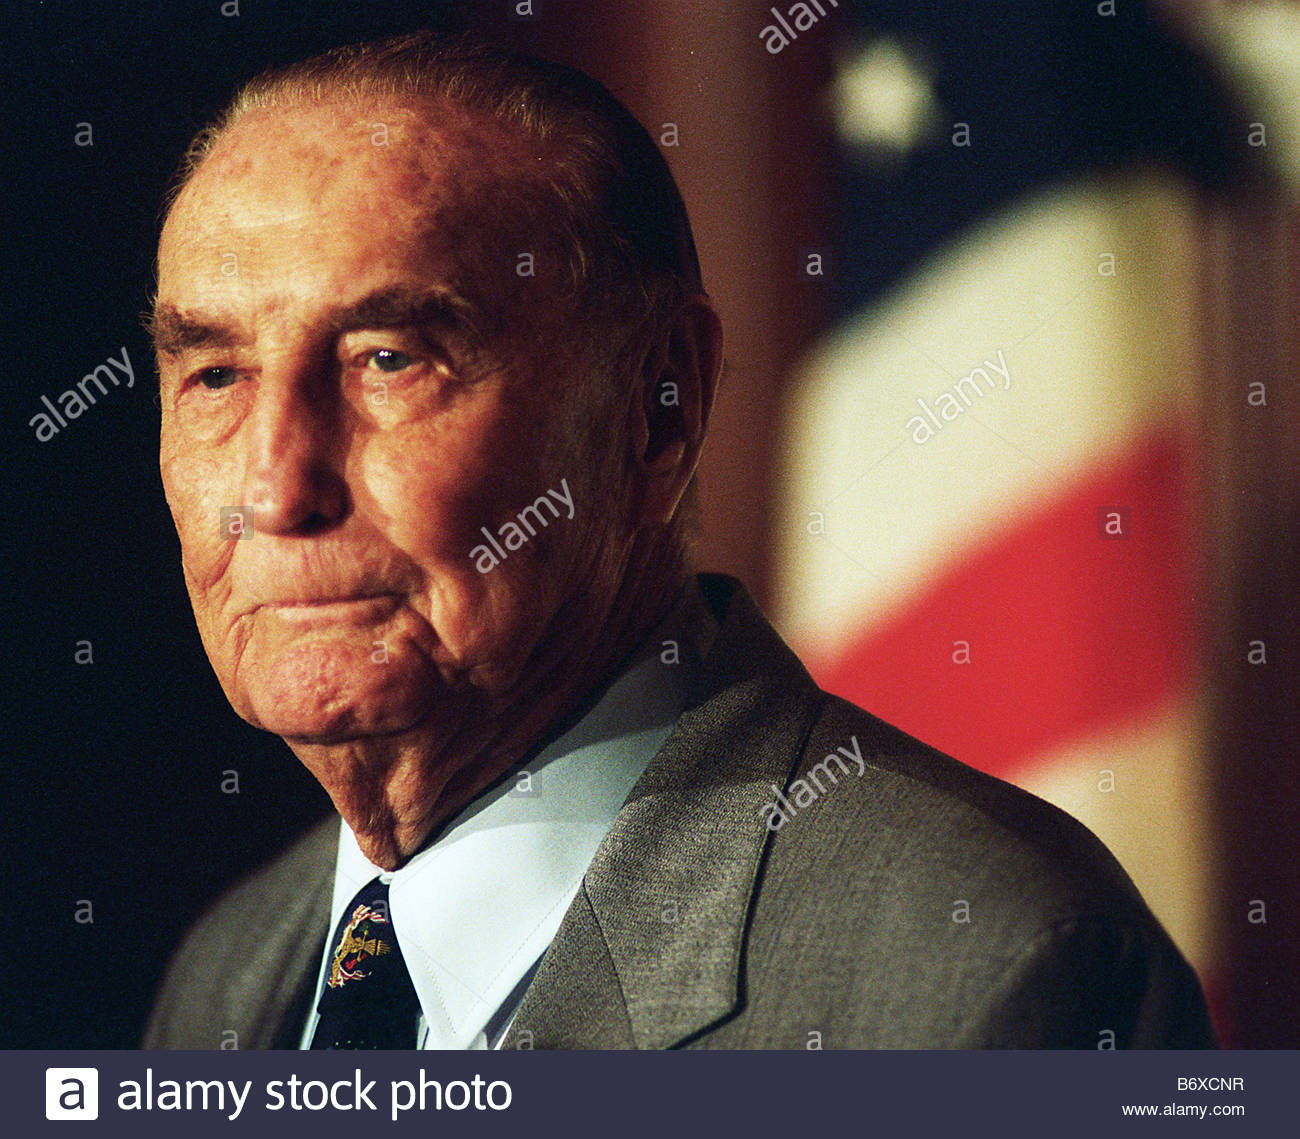 5 22 97 STROM THURMOND Sen Strom Thurmond R S C on becoming the longest serving Senator May 25 1997 CONGRESSIONAL - Stock Image